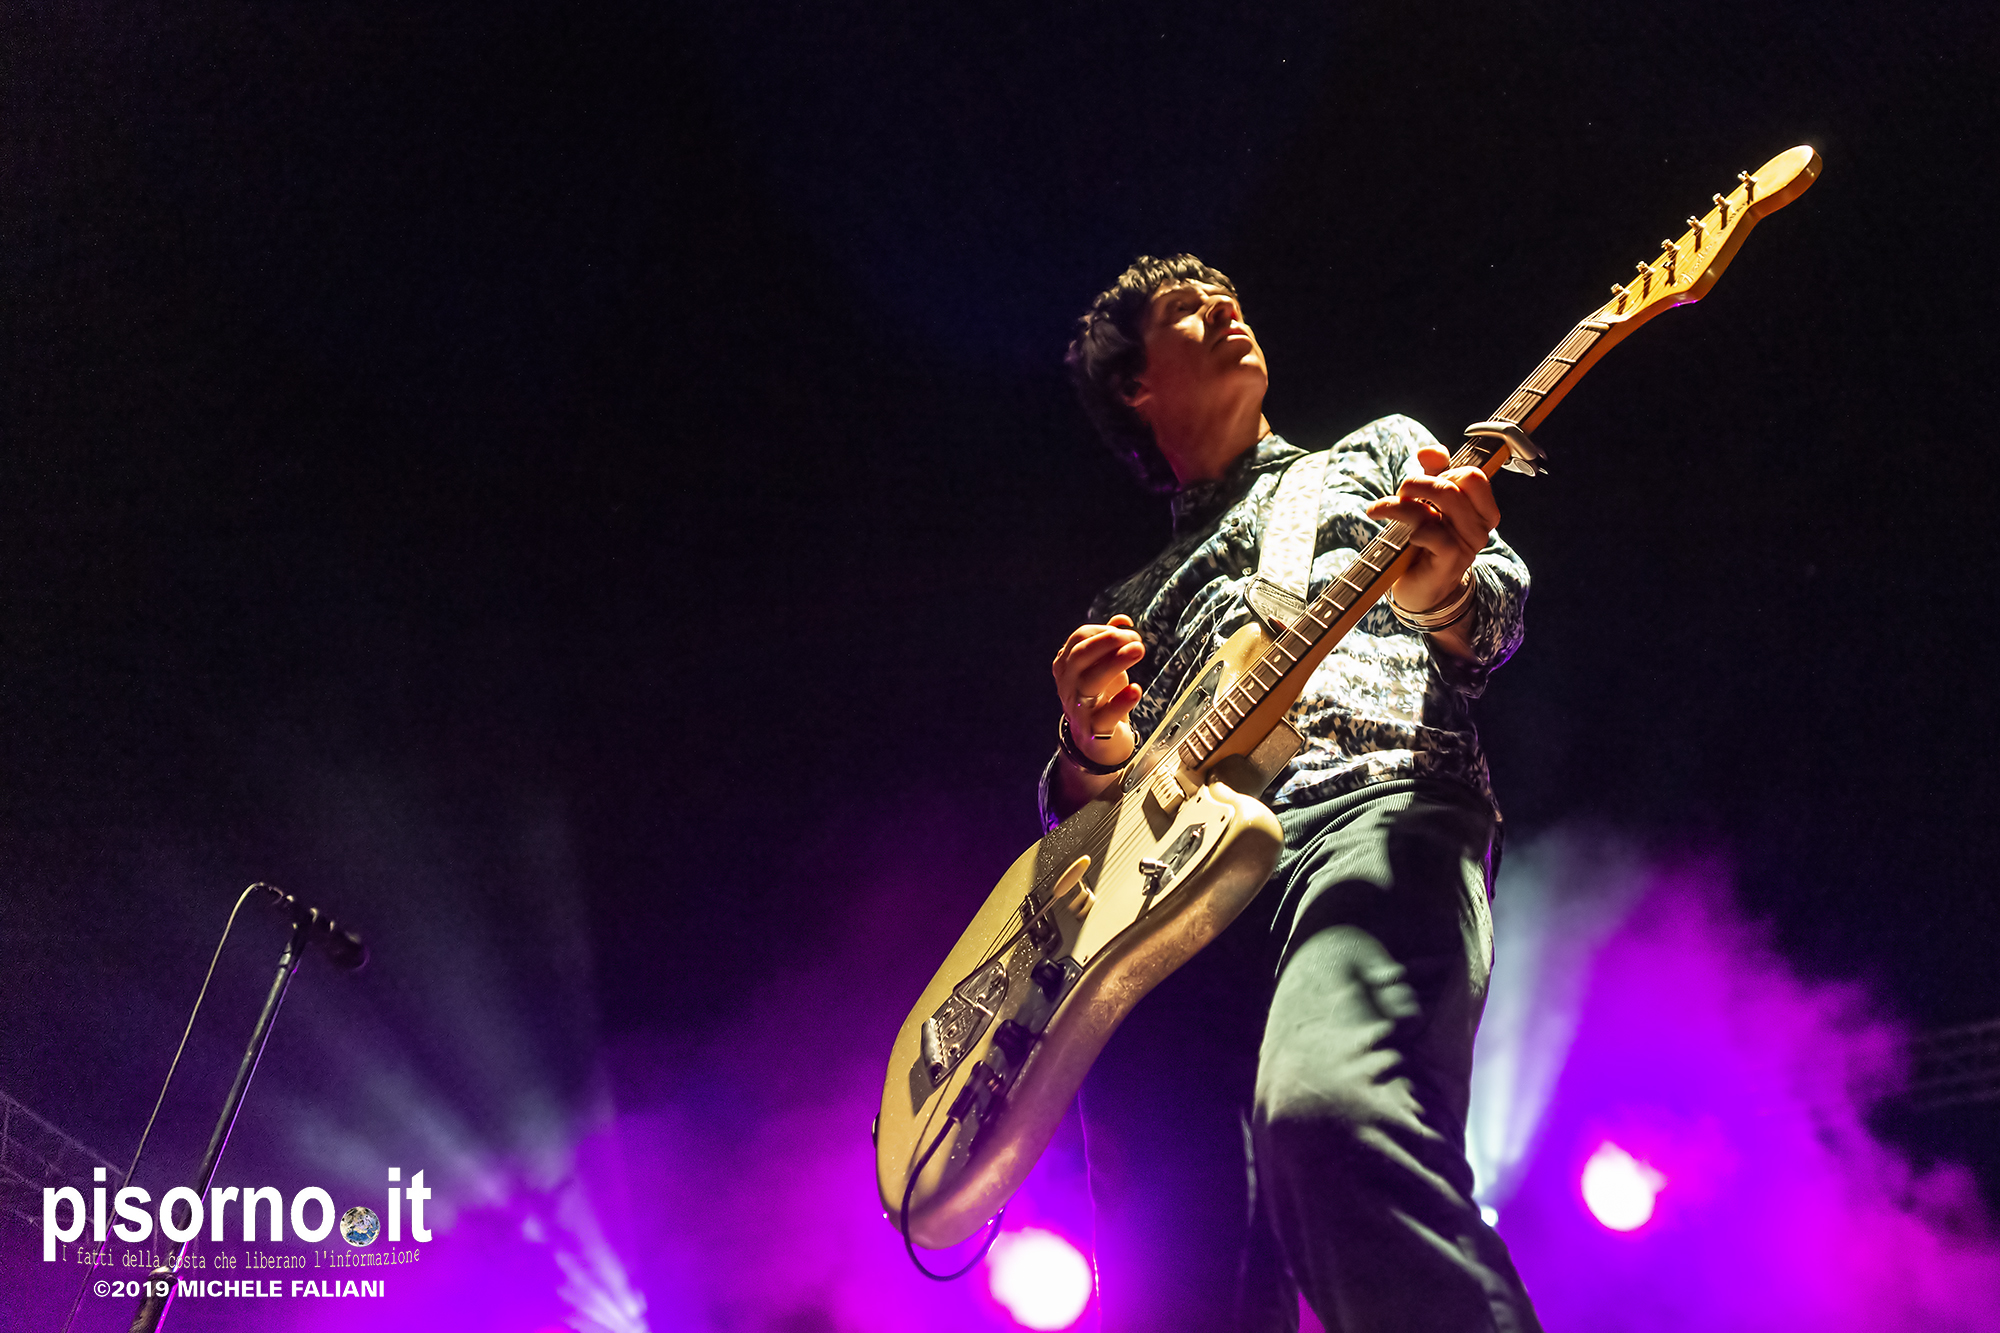 Johnny Marr live @ acieloaperto (Cesena, Italy, June 18th 2019)